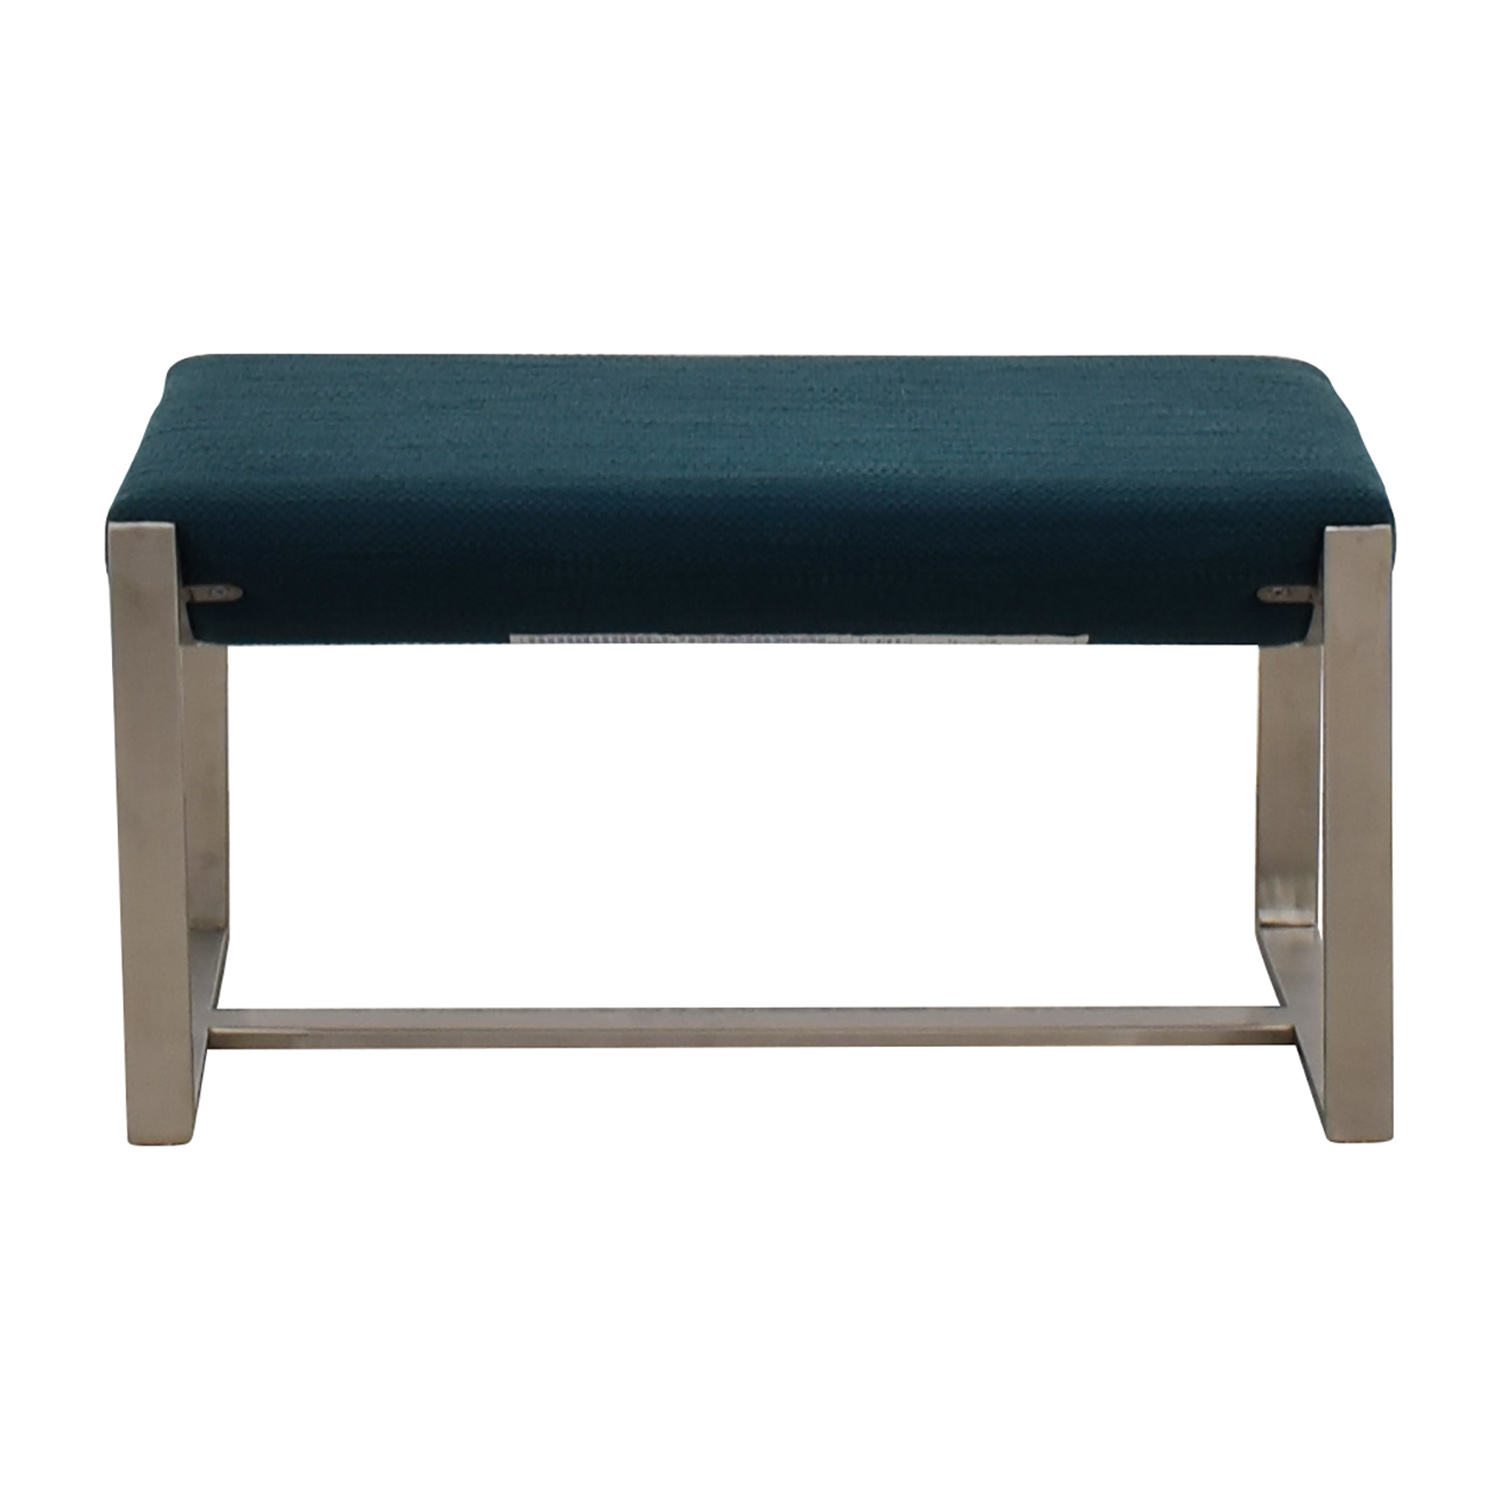 West Elm West Elm Bower Teal and Chrome Ottoman on sale